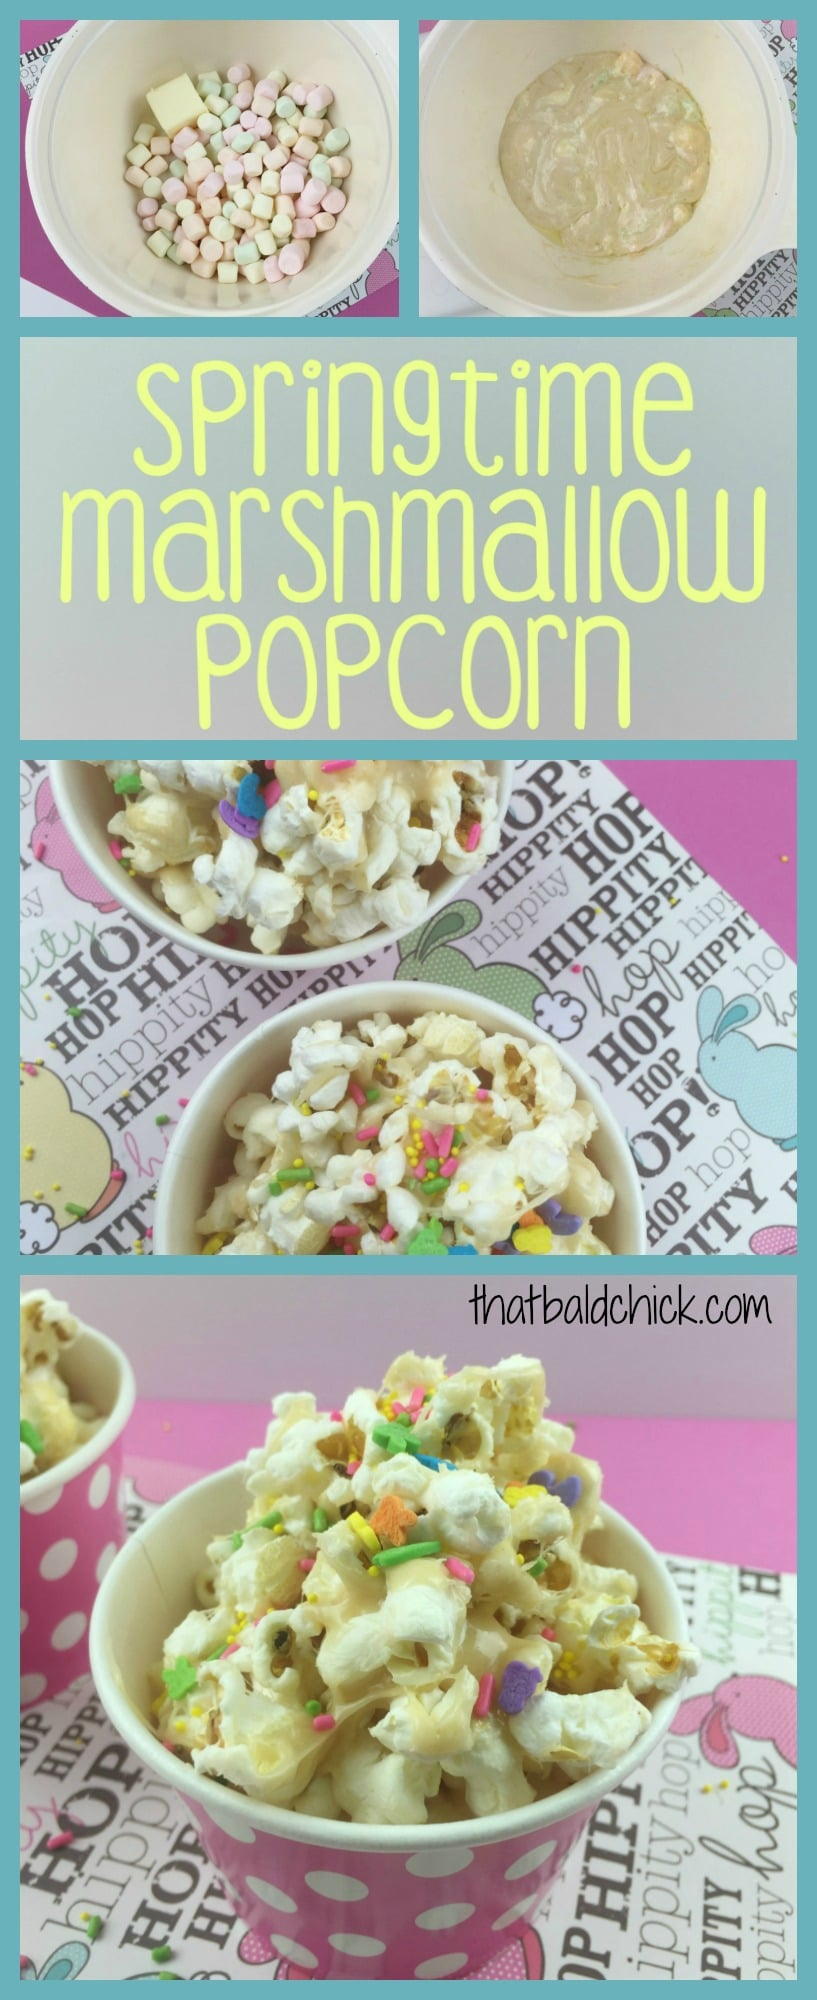 Make your own gourmet Springtime Marshmallow Popcorn with this recipe!